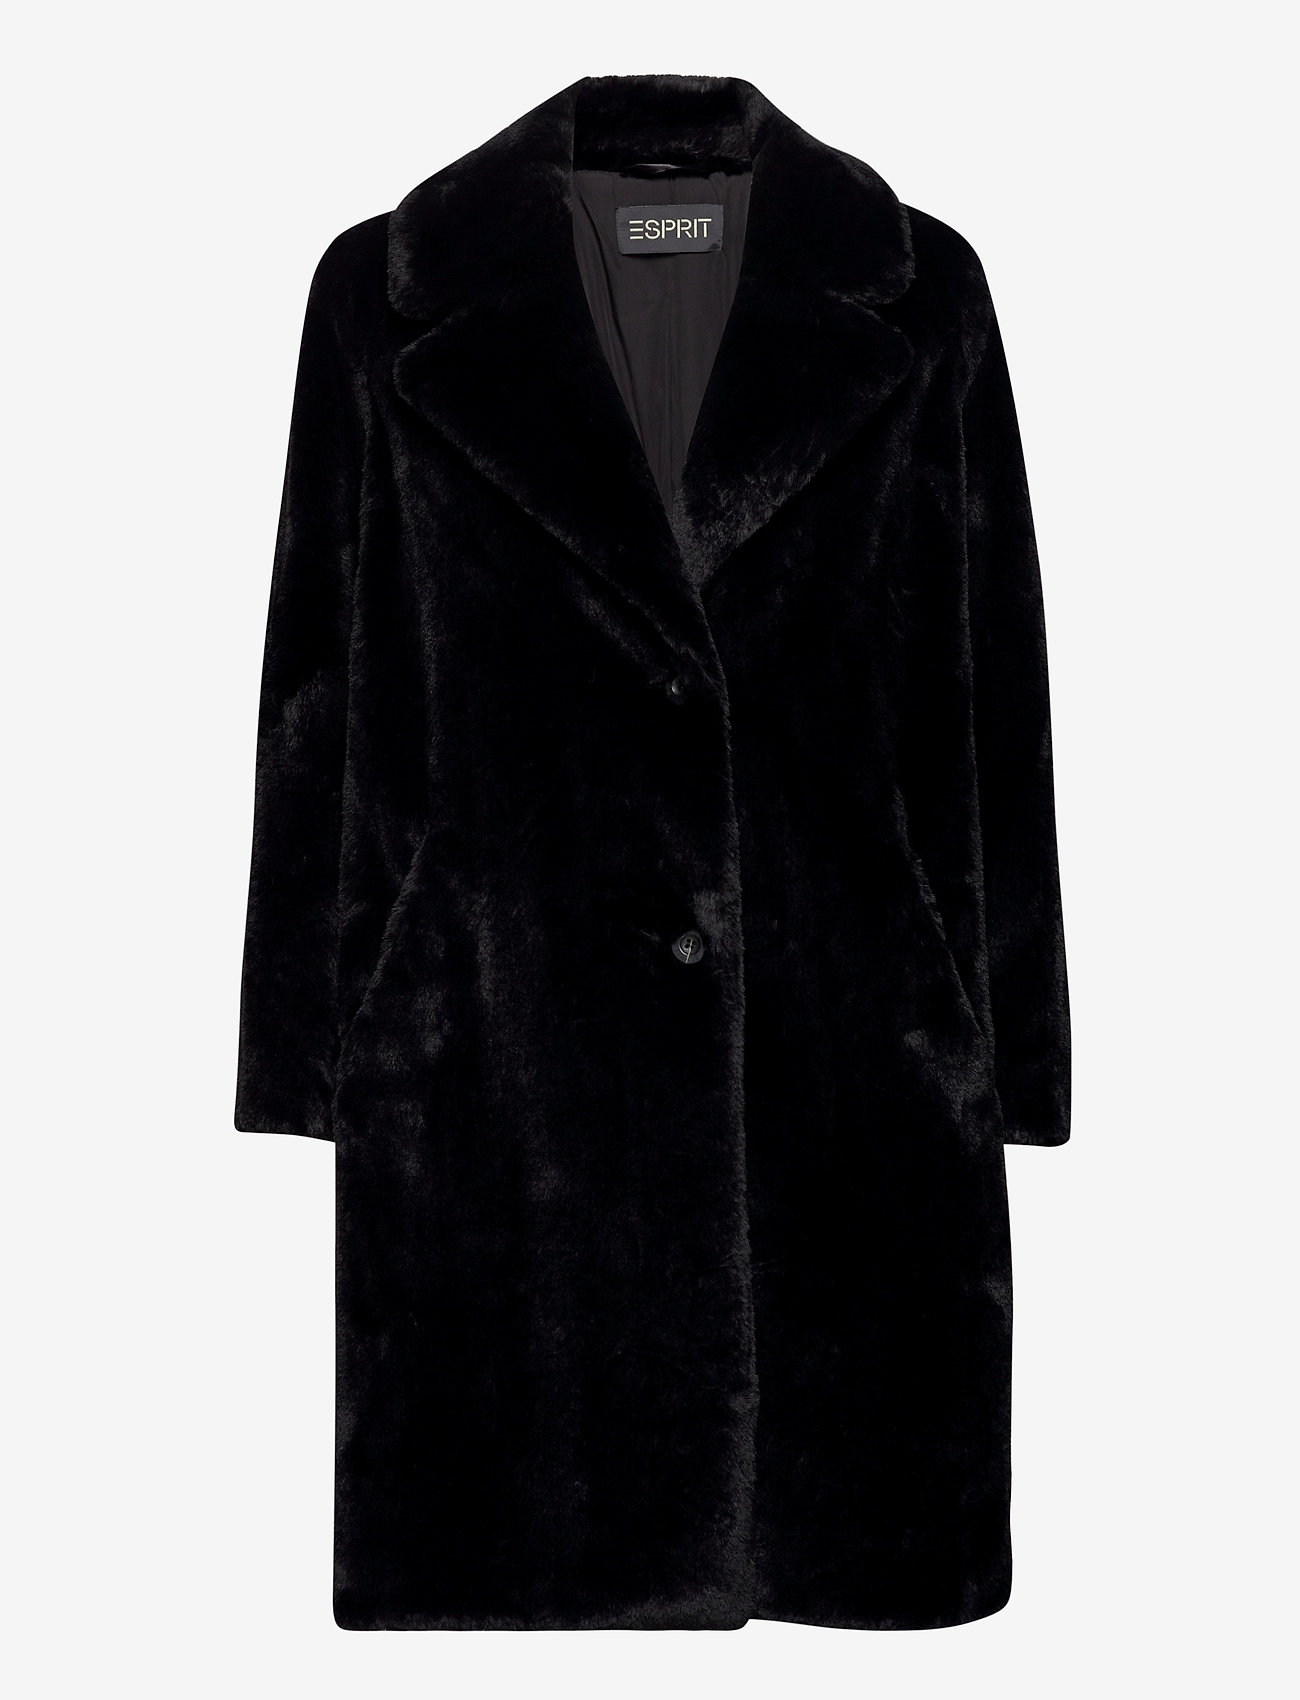 Esprit Collection - Coats woven - fausse fourrure - black - 0